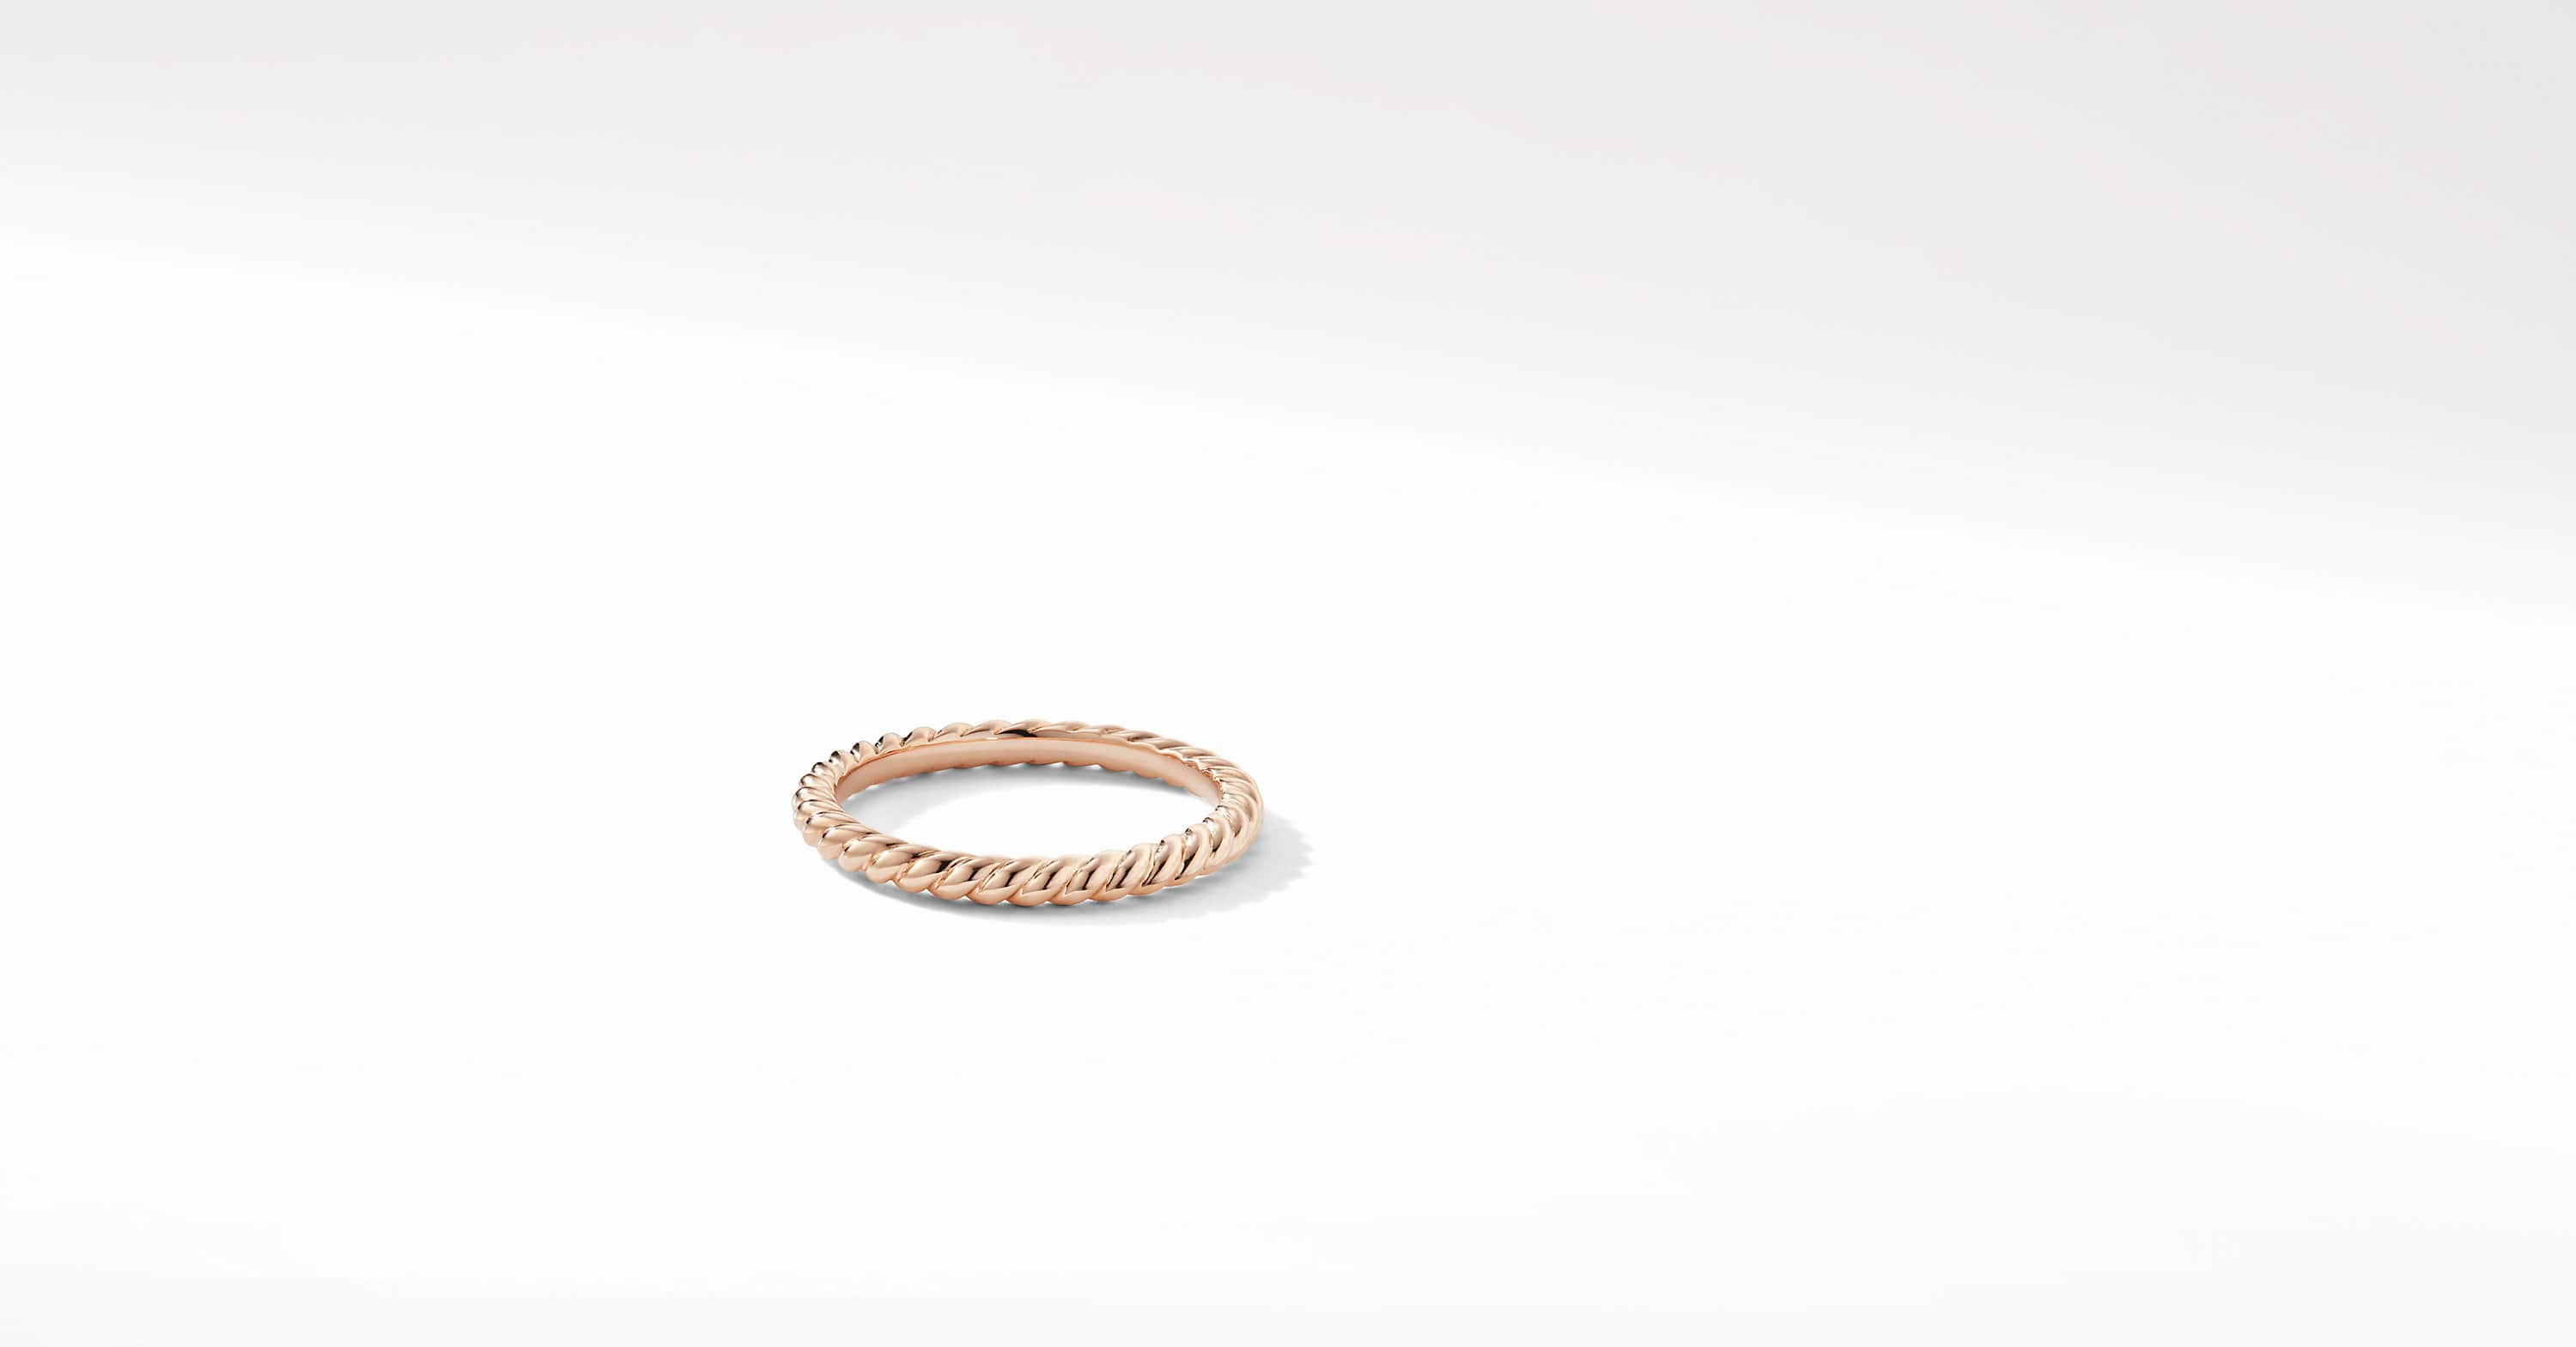 DY Unity Cable Wedding Band in 18K Rose Gold, 2mm